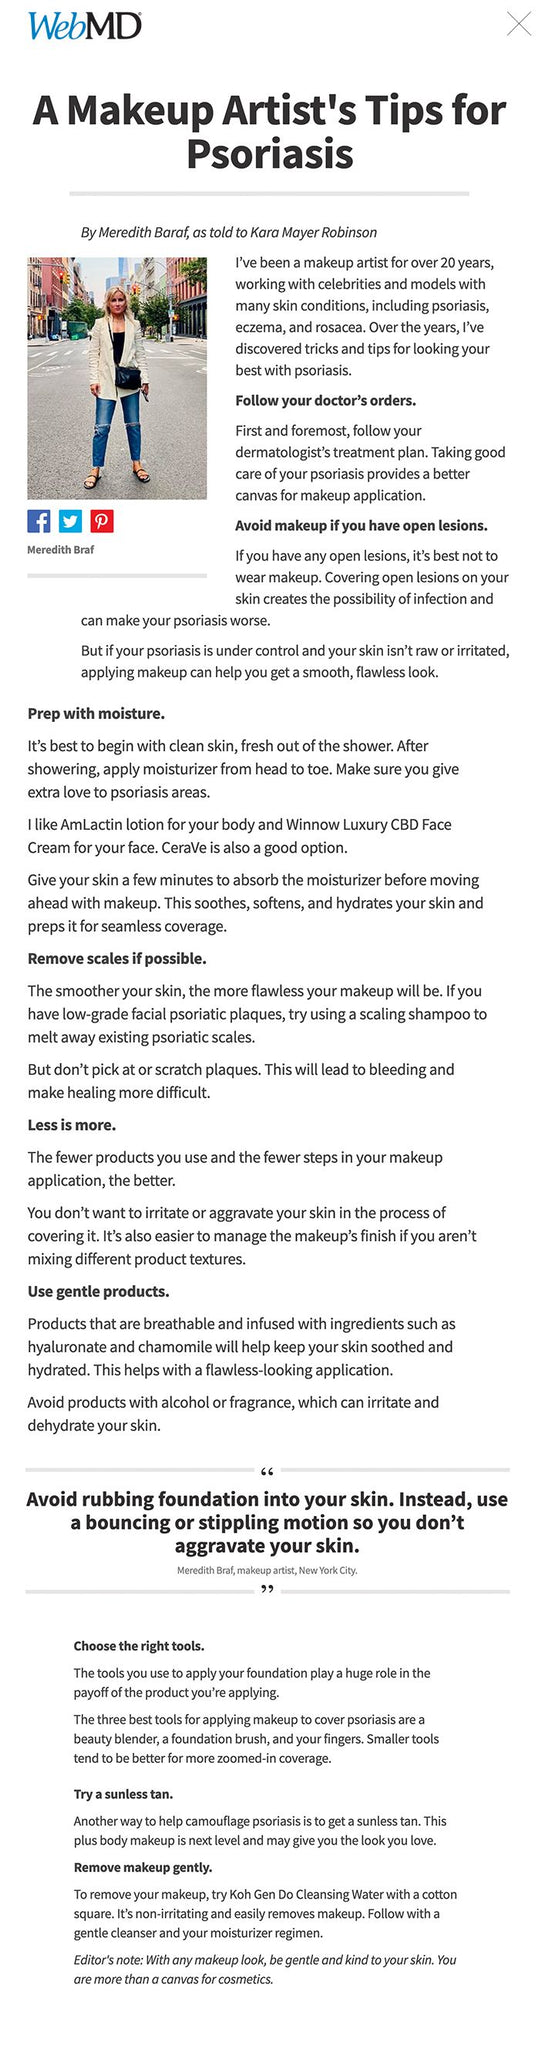 A Makeup Artist's Tips for Psoriasis Share on Facebook Share on Twitter Share on Pinterest Save Email Print By Meredith Baraf, as told to Kara Mayer Robinson   Share on Facebook Share on Twitter Share on Pinterest Meredith Braf I've been a makeup artist for over 20 years, working with celebrities and models with many skin conditions, including psoriasis, eczema, and rosacea. Over the years, I've discovered tricks and tips for looking your best with psoriasis.  Follow your doctor's orders.  First and foremost, follow your dermatologist's treatment plan. Taking good care of your psoriasis provides a better canvas for makeup application.  Avoid makeup if you have open lesions.  If you have any open lesions, it's best not to wear makeup. Covering open lesions on your skin creates the possibility of infection and can make your psoriasis worse.  But if your psoriasis is under control and your skin isn't raw or irritated, applying makeup can help you get a smooth, flawless look.  Prep with moisture.  It's best to begin with clean skin, fresh out of the shower. After showering, apply moisturizer from head to toe. Make sure you give extra love to psoriasis areas.  I like AmLactin lotion for your body and Winnow Luxury CBD Face Cream for your face. CeraVe is also a good option.  Give your skin a few minutes to absorb the moisturizer before moving ahead with makeup. This soothes, softens, and hydrates your skin and preps it for seamless coverage.  Remove scales if possible.  The smoother your skin, the more flawless your makeup will be. If you have low-grade facial psoriatic plaques, try using a scaling shampoo to melt away existing psoriatic scales.  But don't pick at or scratch plaques. This will lead to bleeding and make healing more difficult.  Less is more.  The fewer products you use and the fewer steps in your makeup application, the better.  You don't want to irritate or aggravate your skin in the process of covering it. It's also easier to manage the makeup's finish i